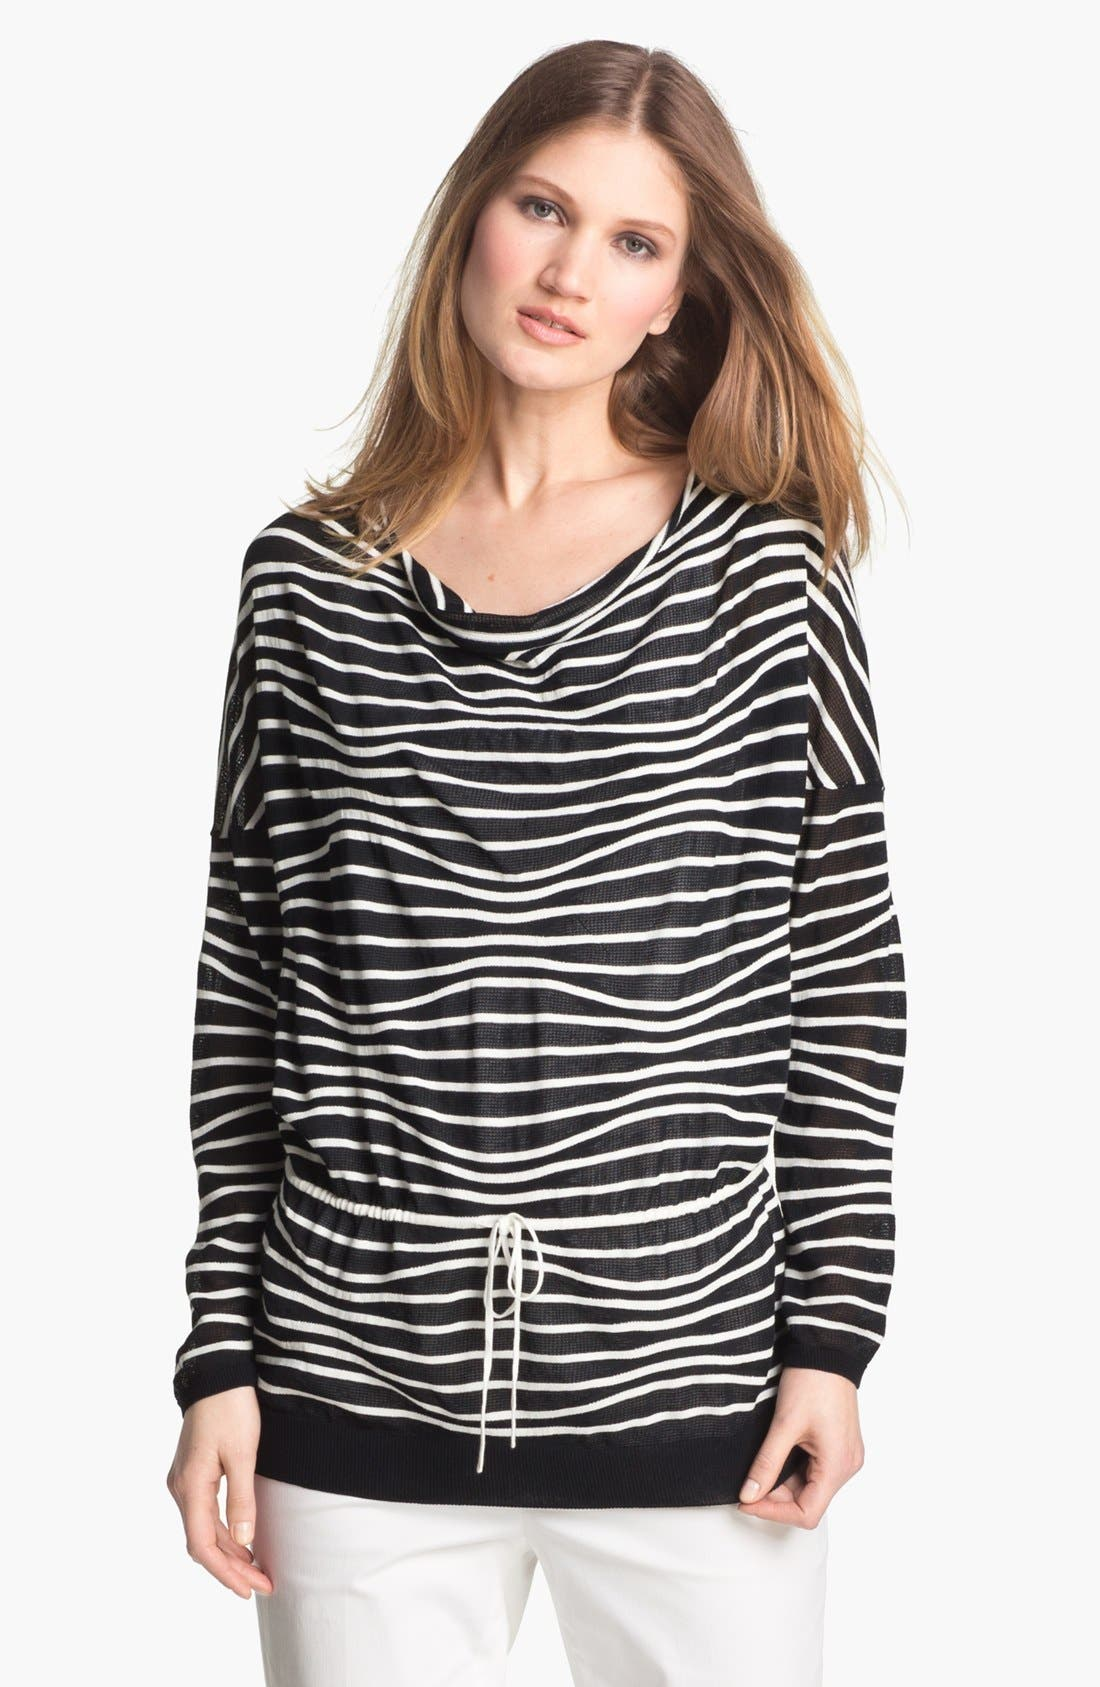 Alternate Image 1 Selected - Lafayette 148 New York Drawstring Waist Sweater